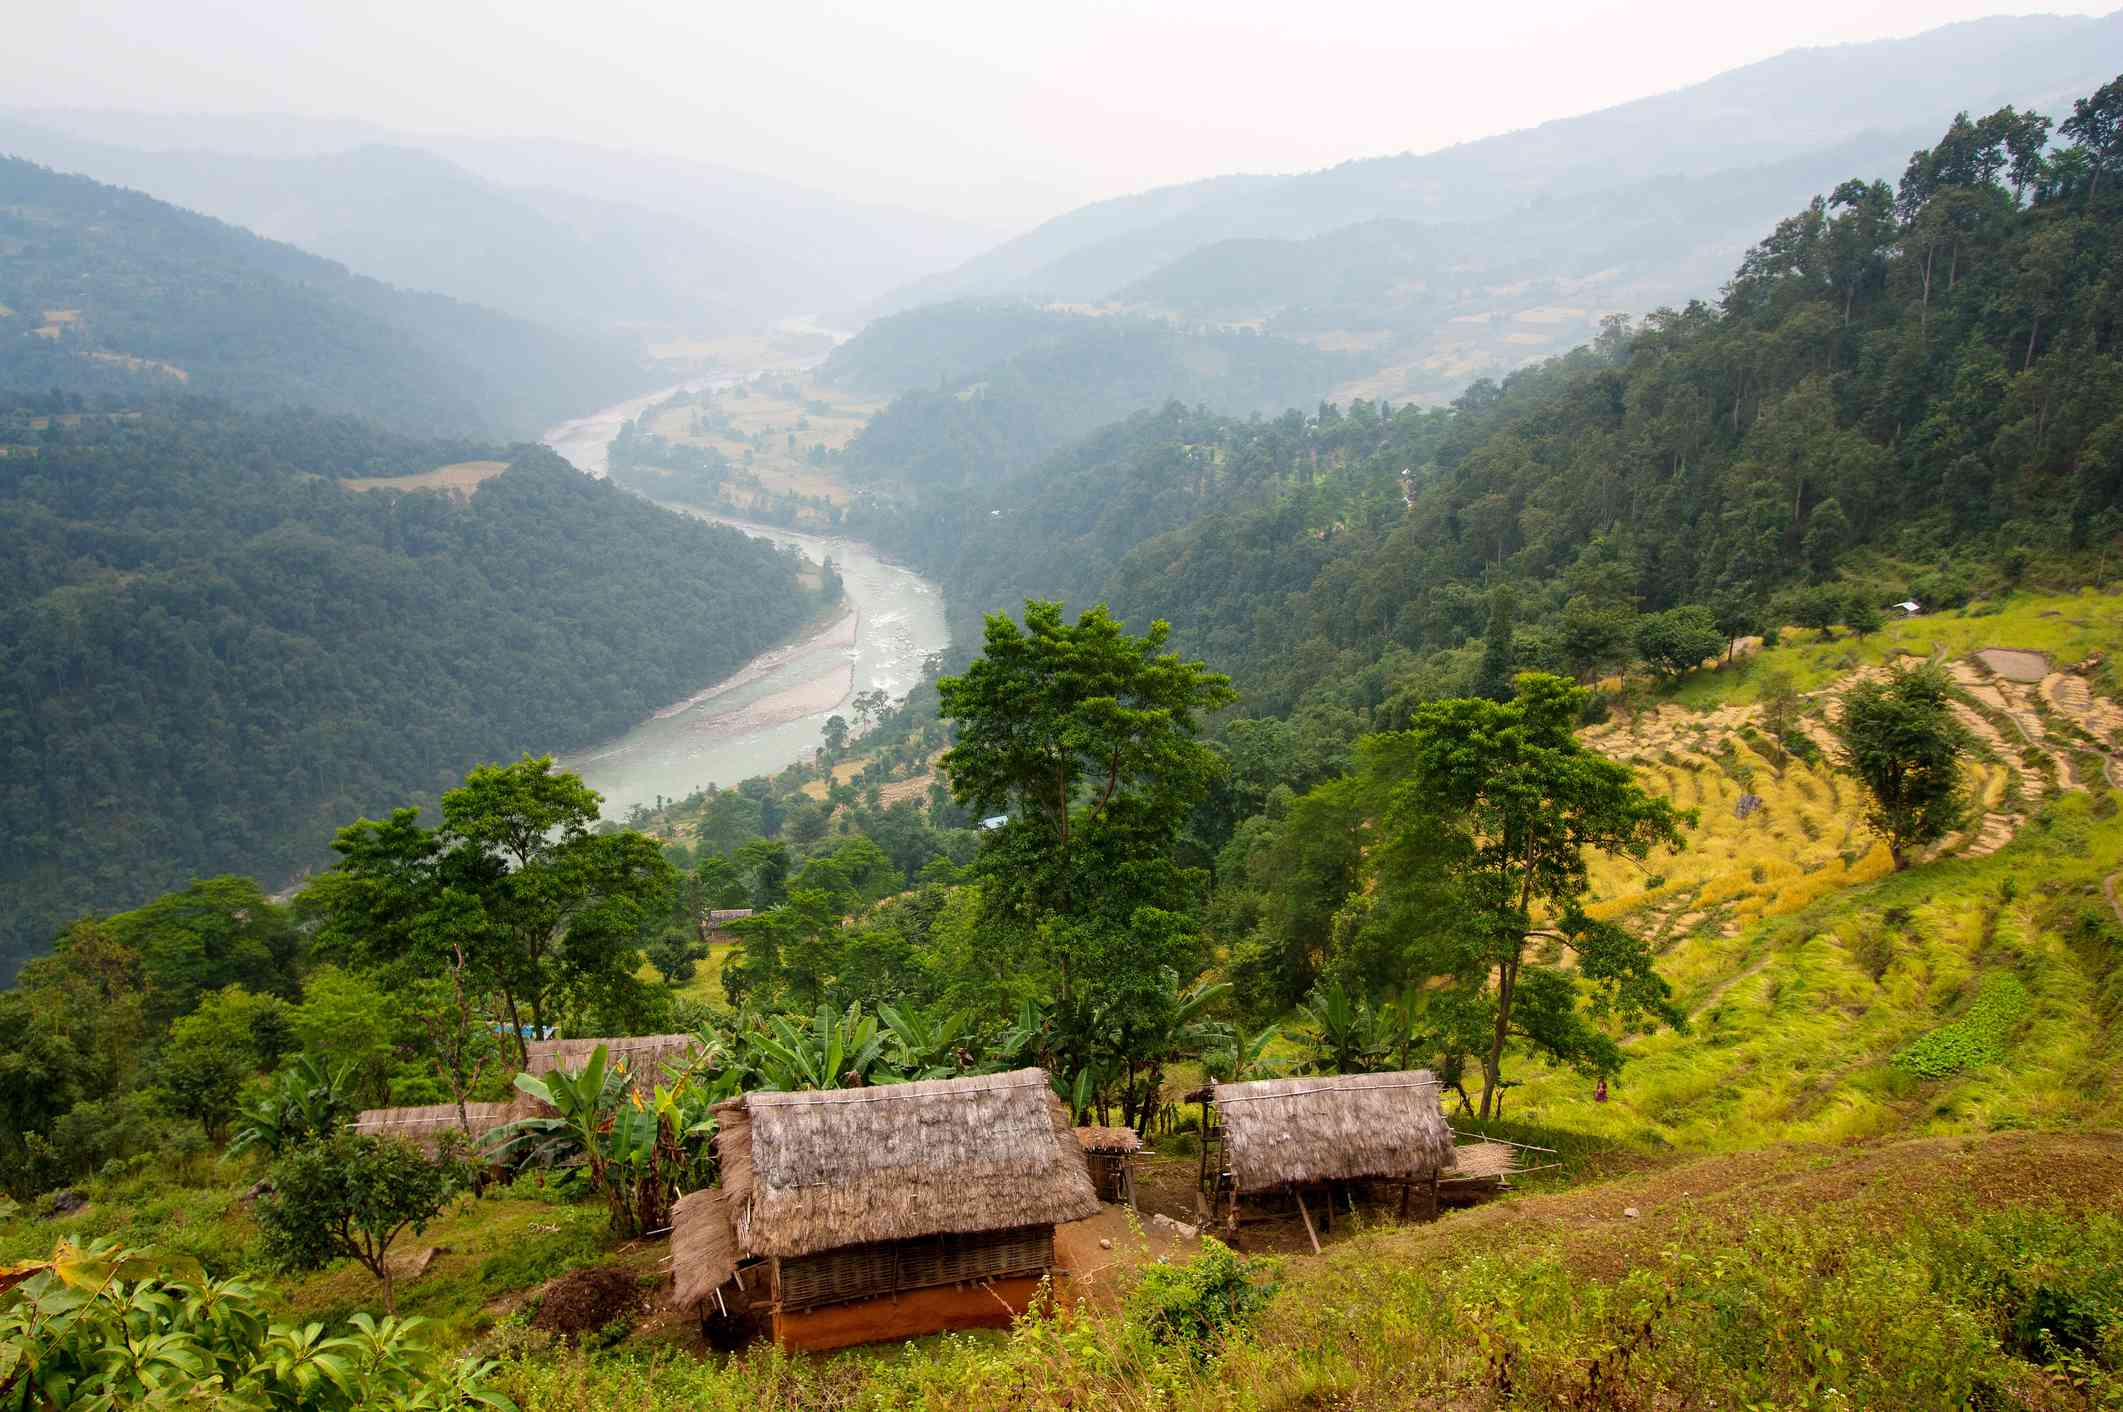 grass-roofed huts on terraced hillside farmland with river running through a valley in background